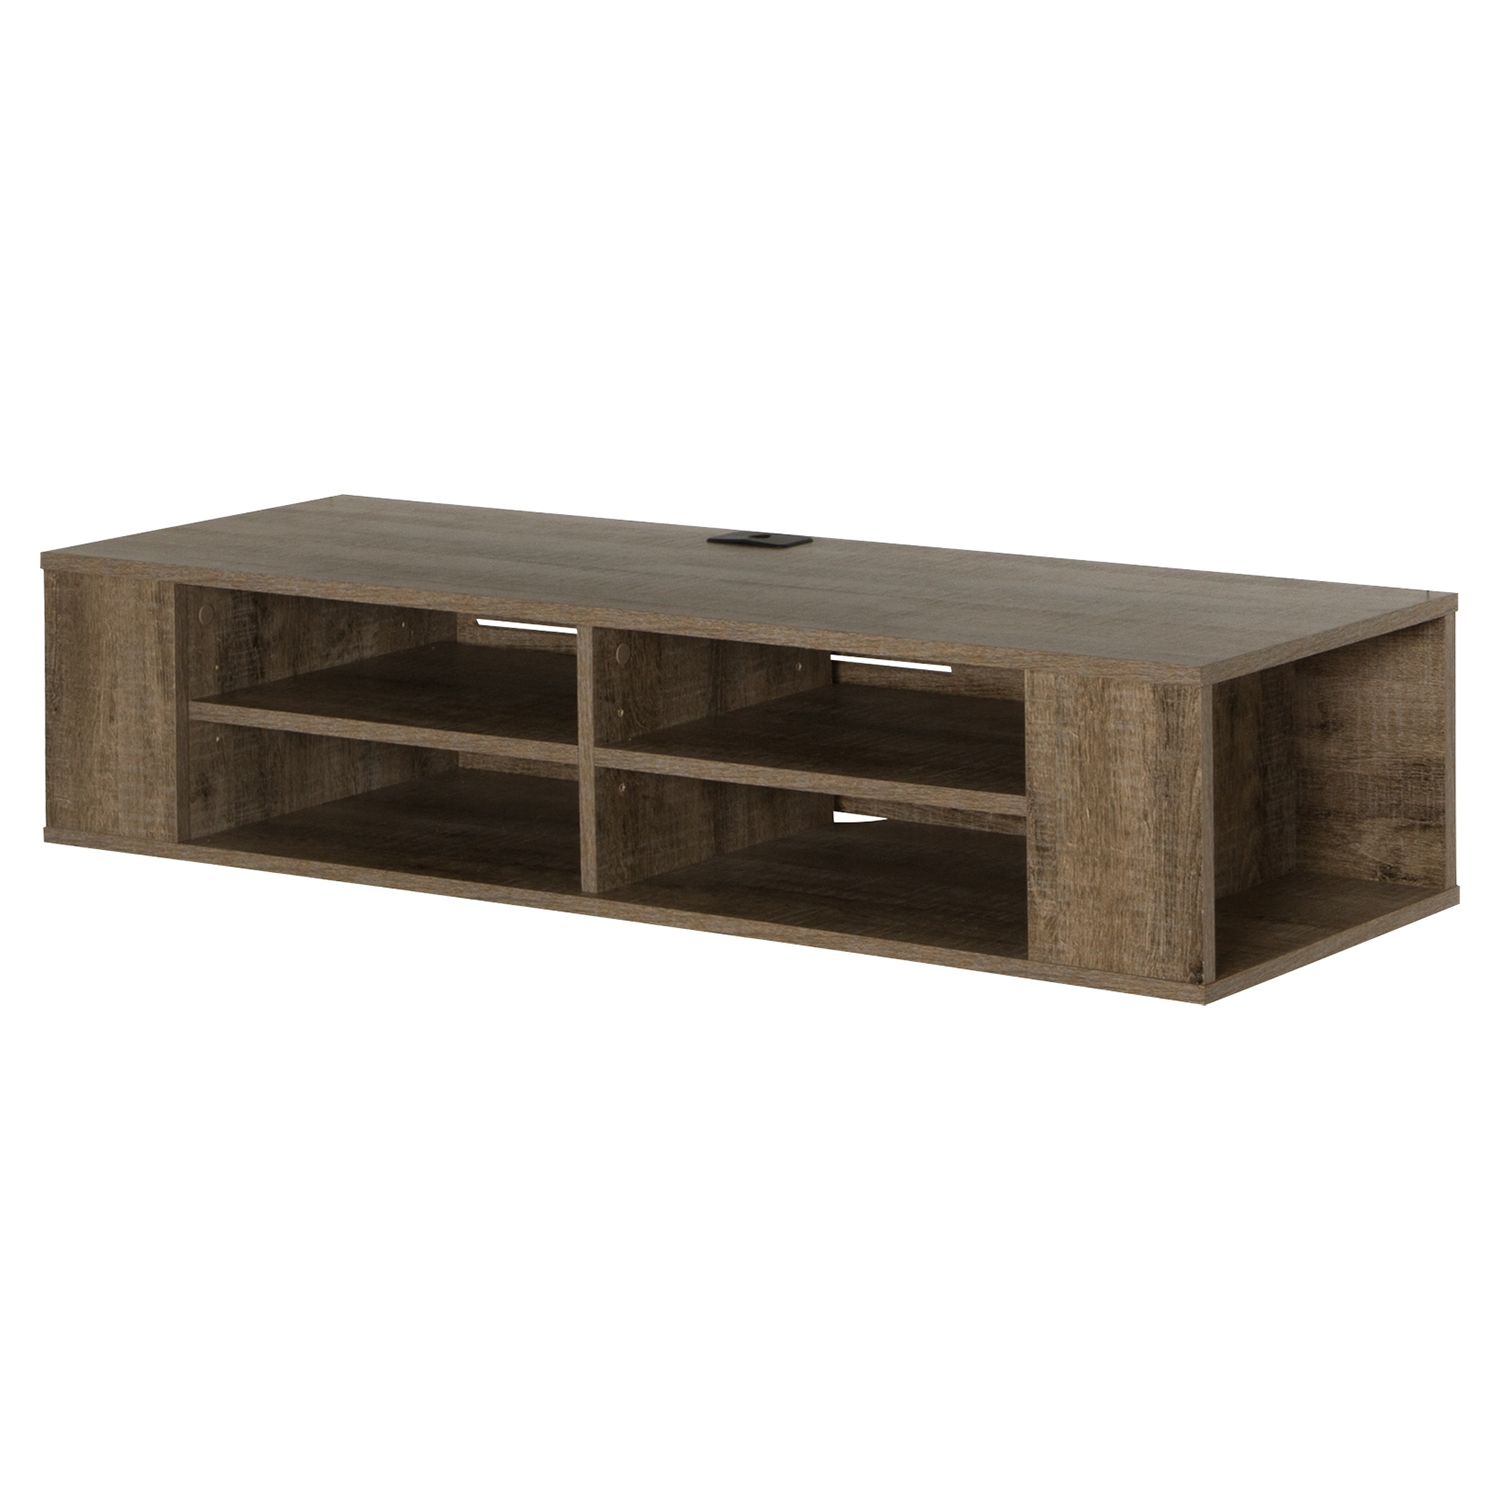 "City Life 48"" Wall Mounted Media Console - Weathered Oak - SS-9062675"